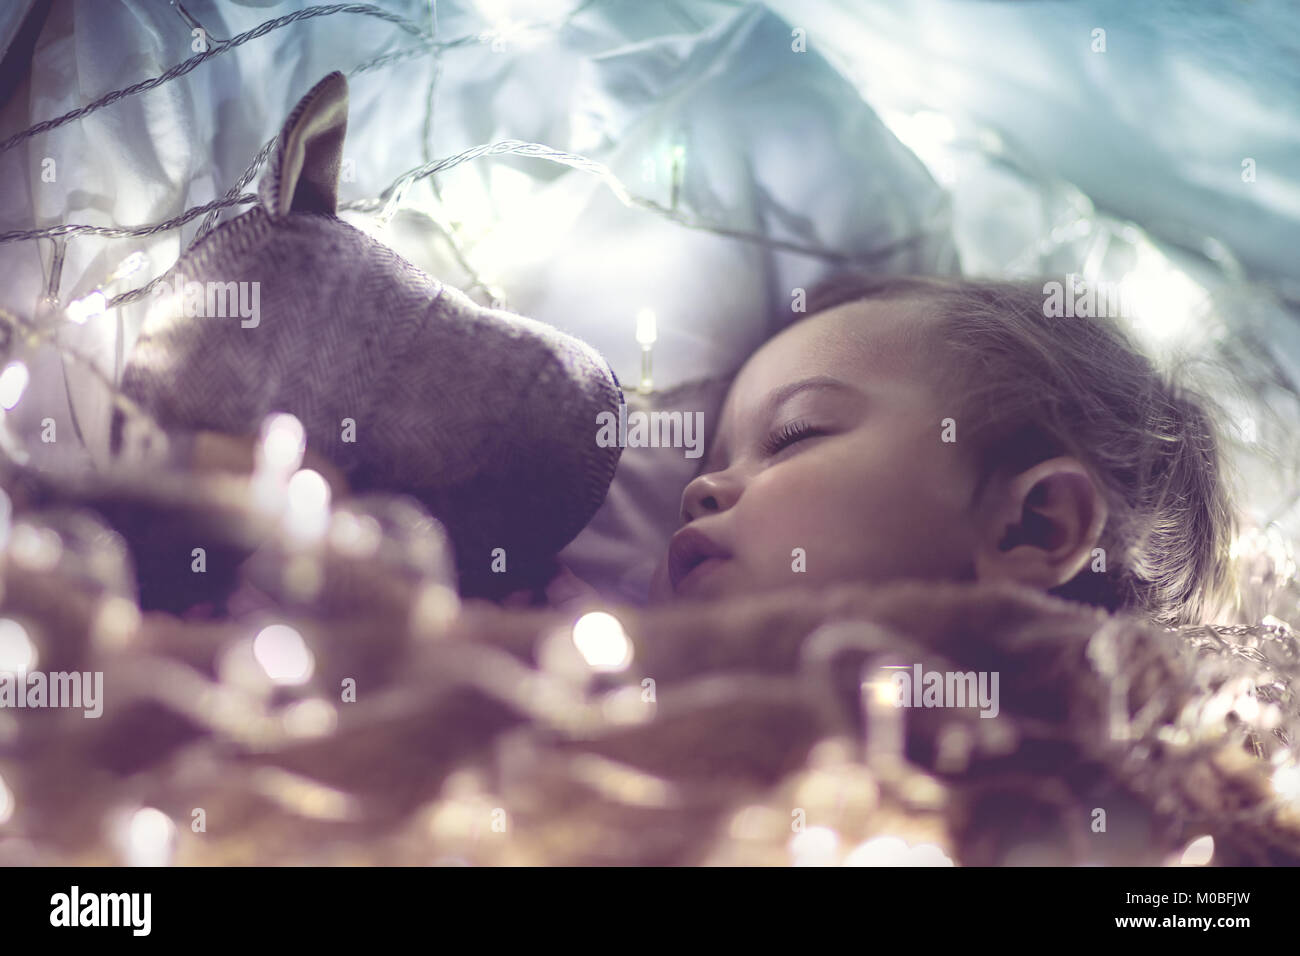 Sweet little baby boy sleeping with favourite soft toy, dreaming at home on magic night, vintage style fantasy photo Stock Photo